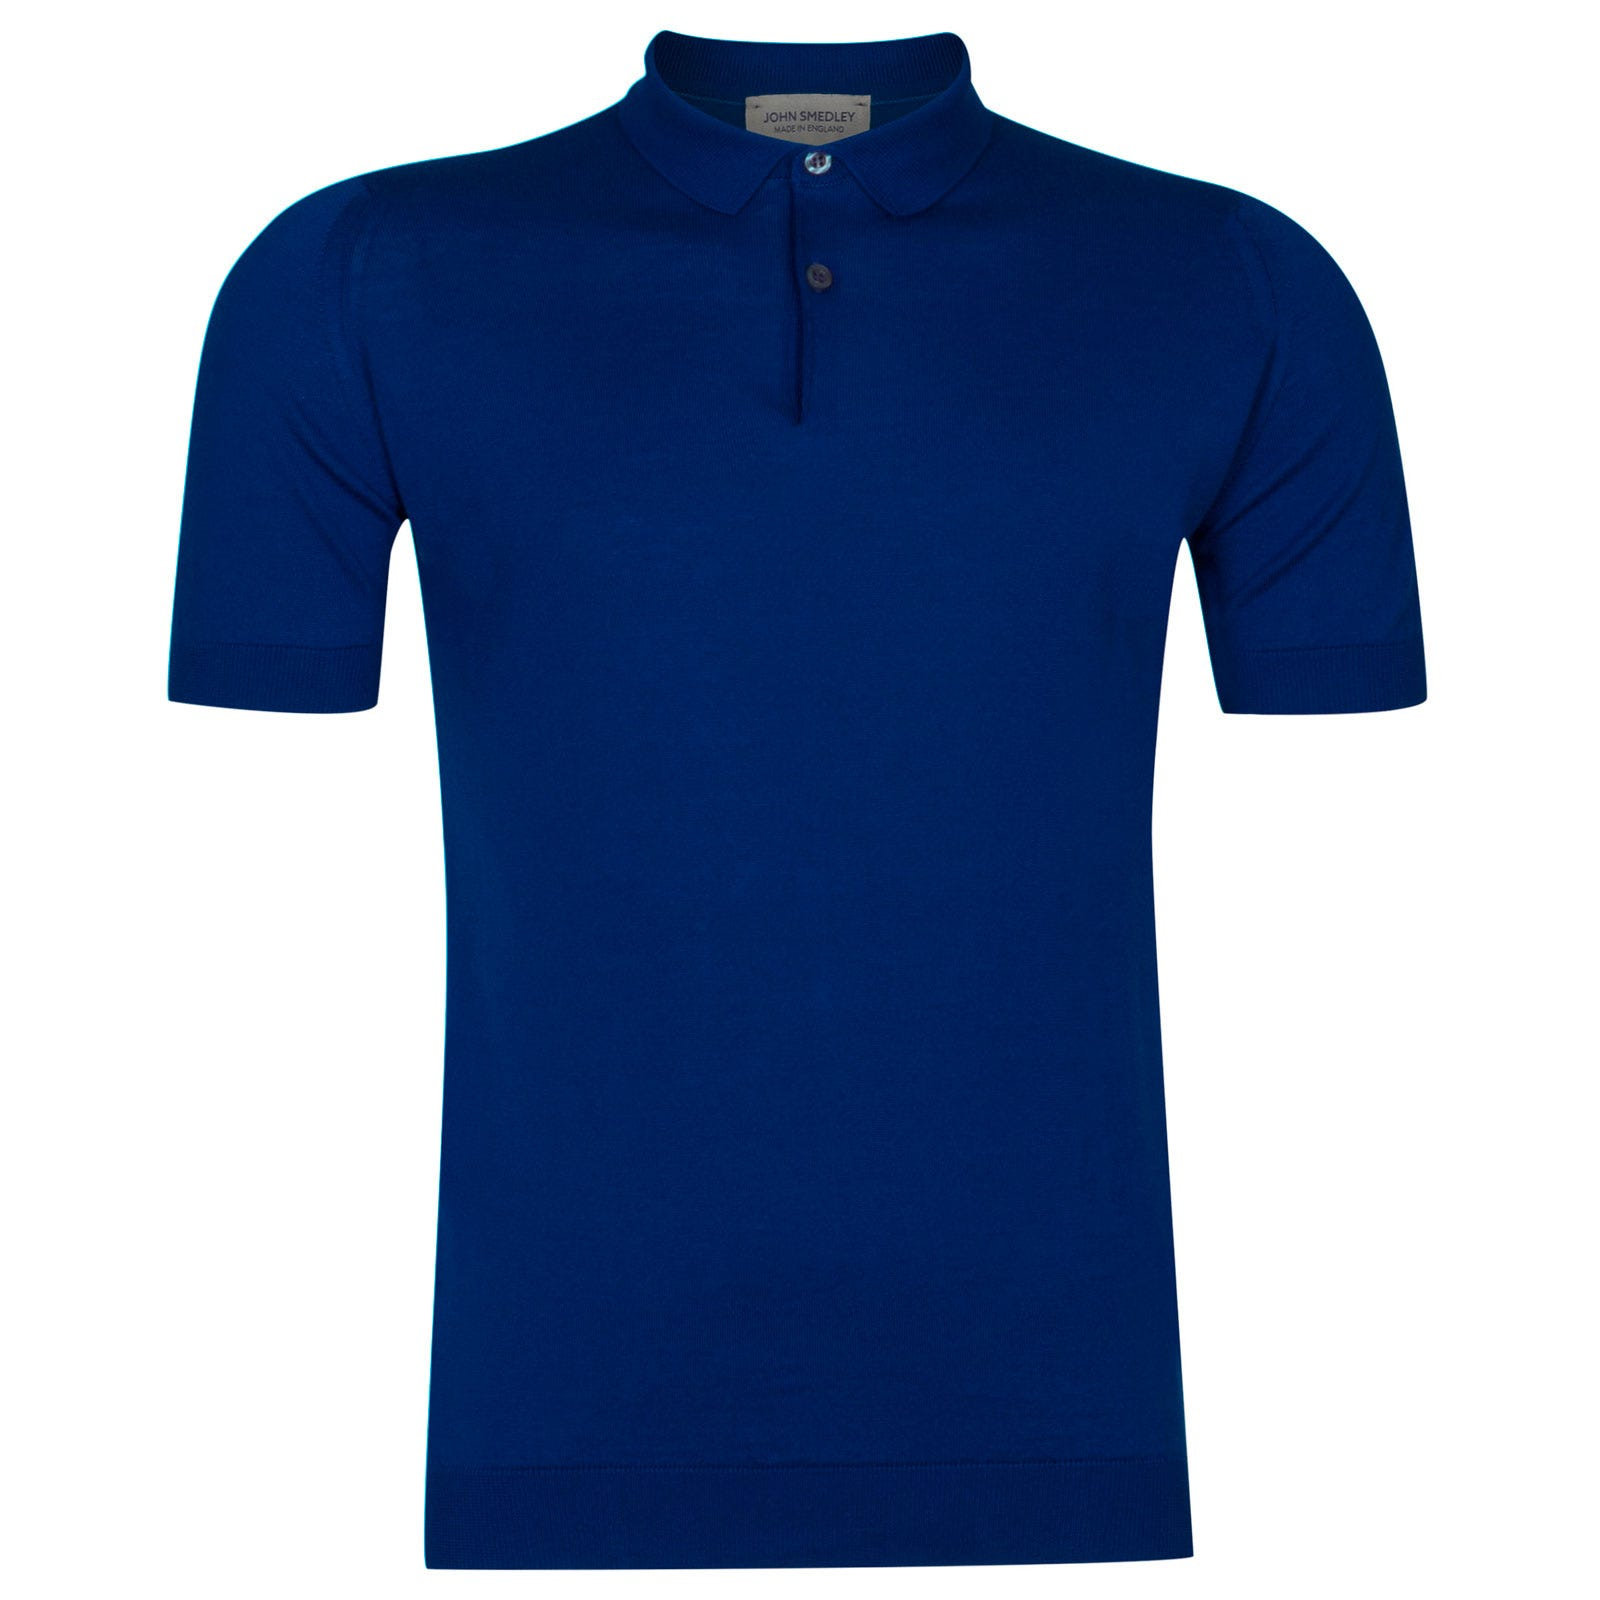 John Smedley rhodes Sea Island Cotton Shirt in Coniston Blue-XL